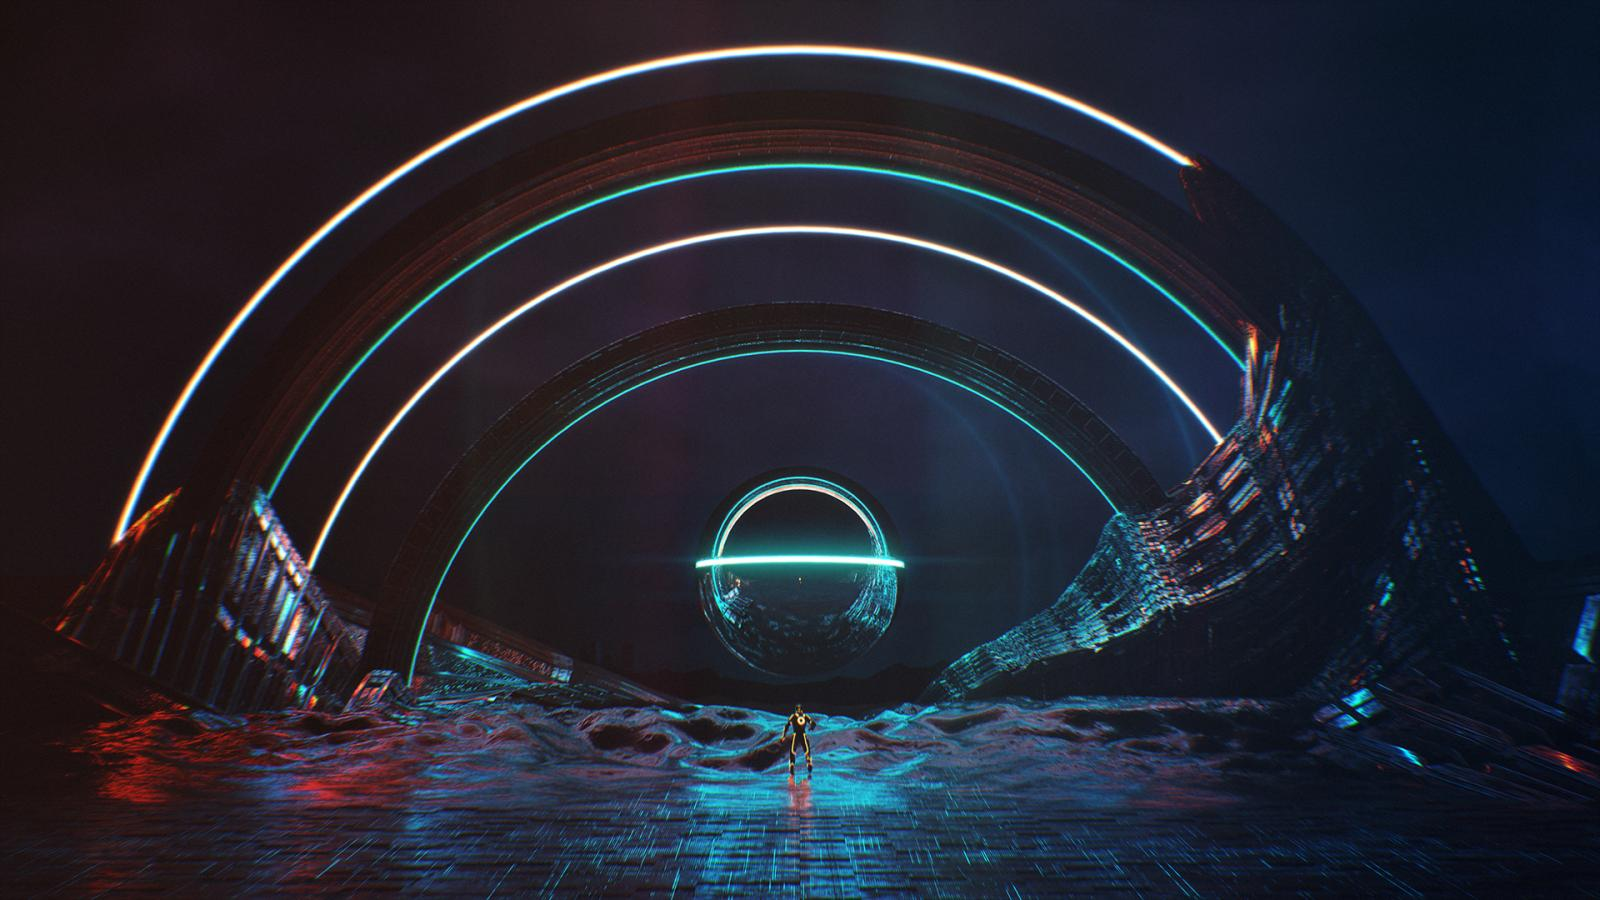 Digital Art & Game Design: TRON Concepts